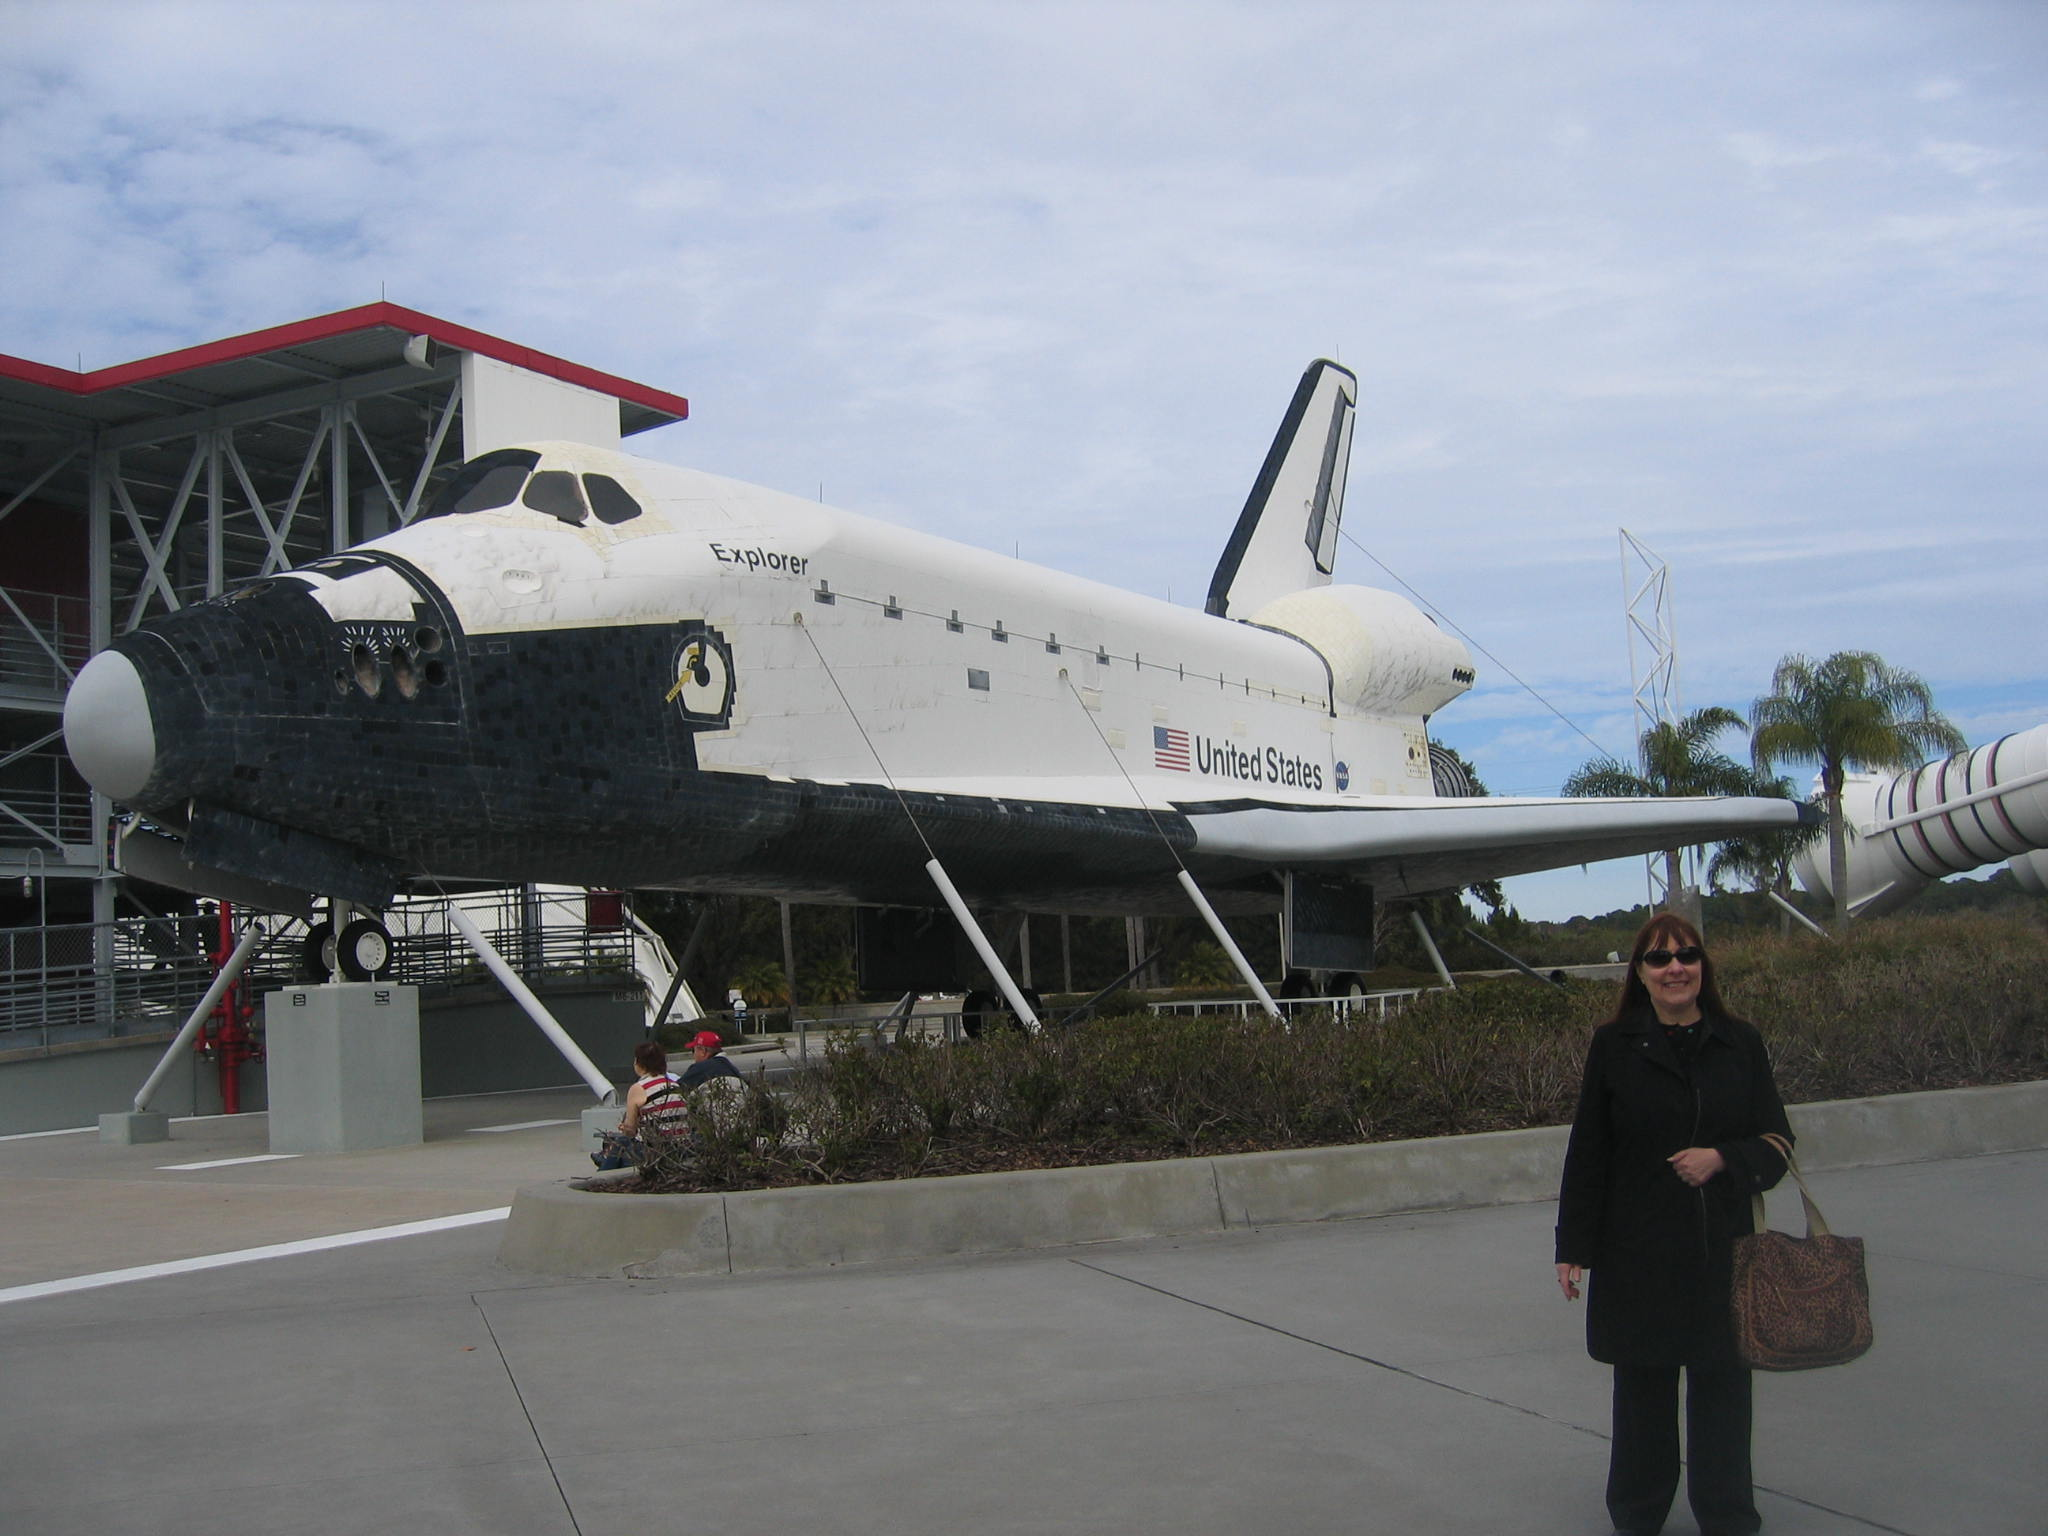 The blog author and NASA Space Shuttle at Kennedy Space Center. All rights reserved.